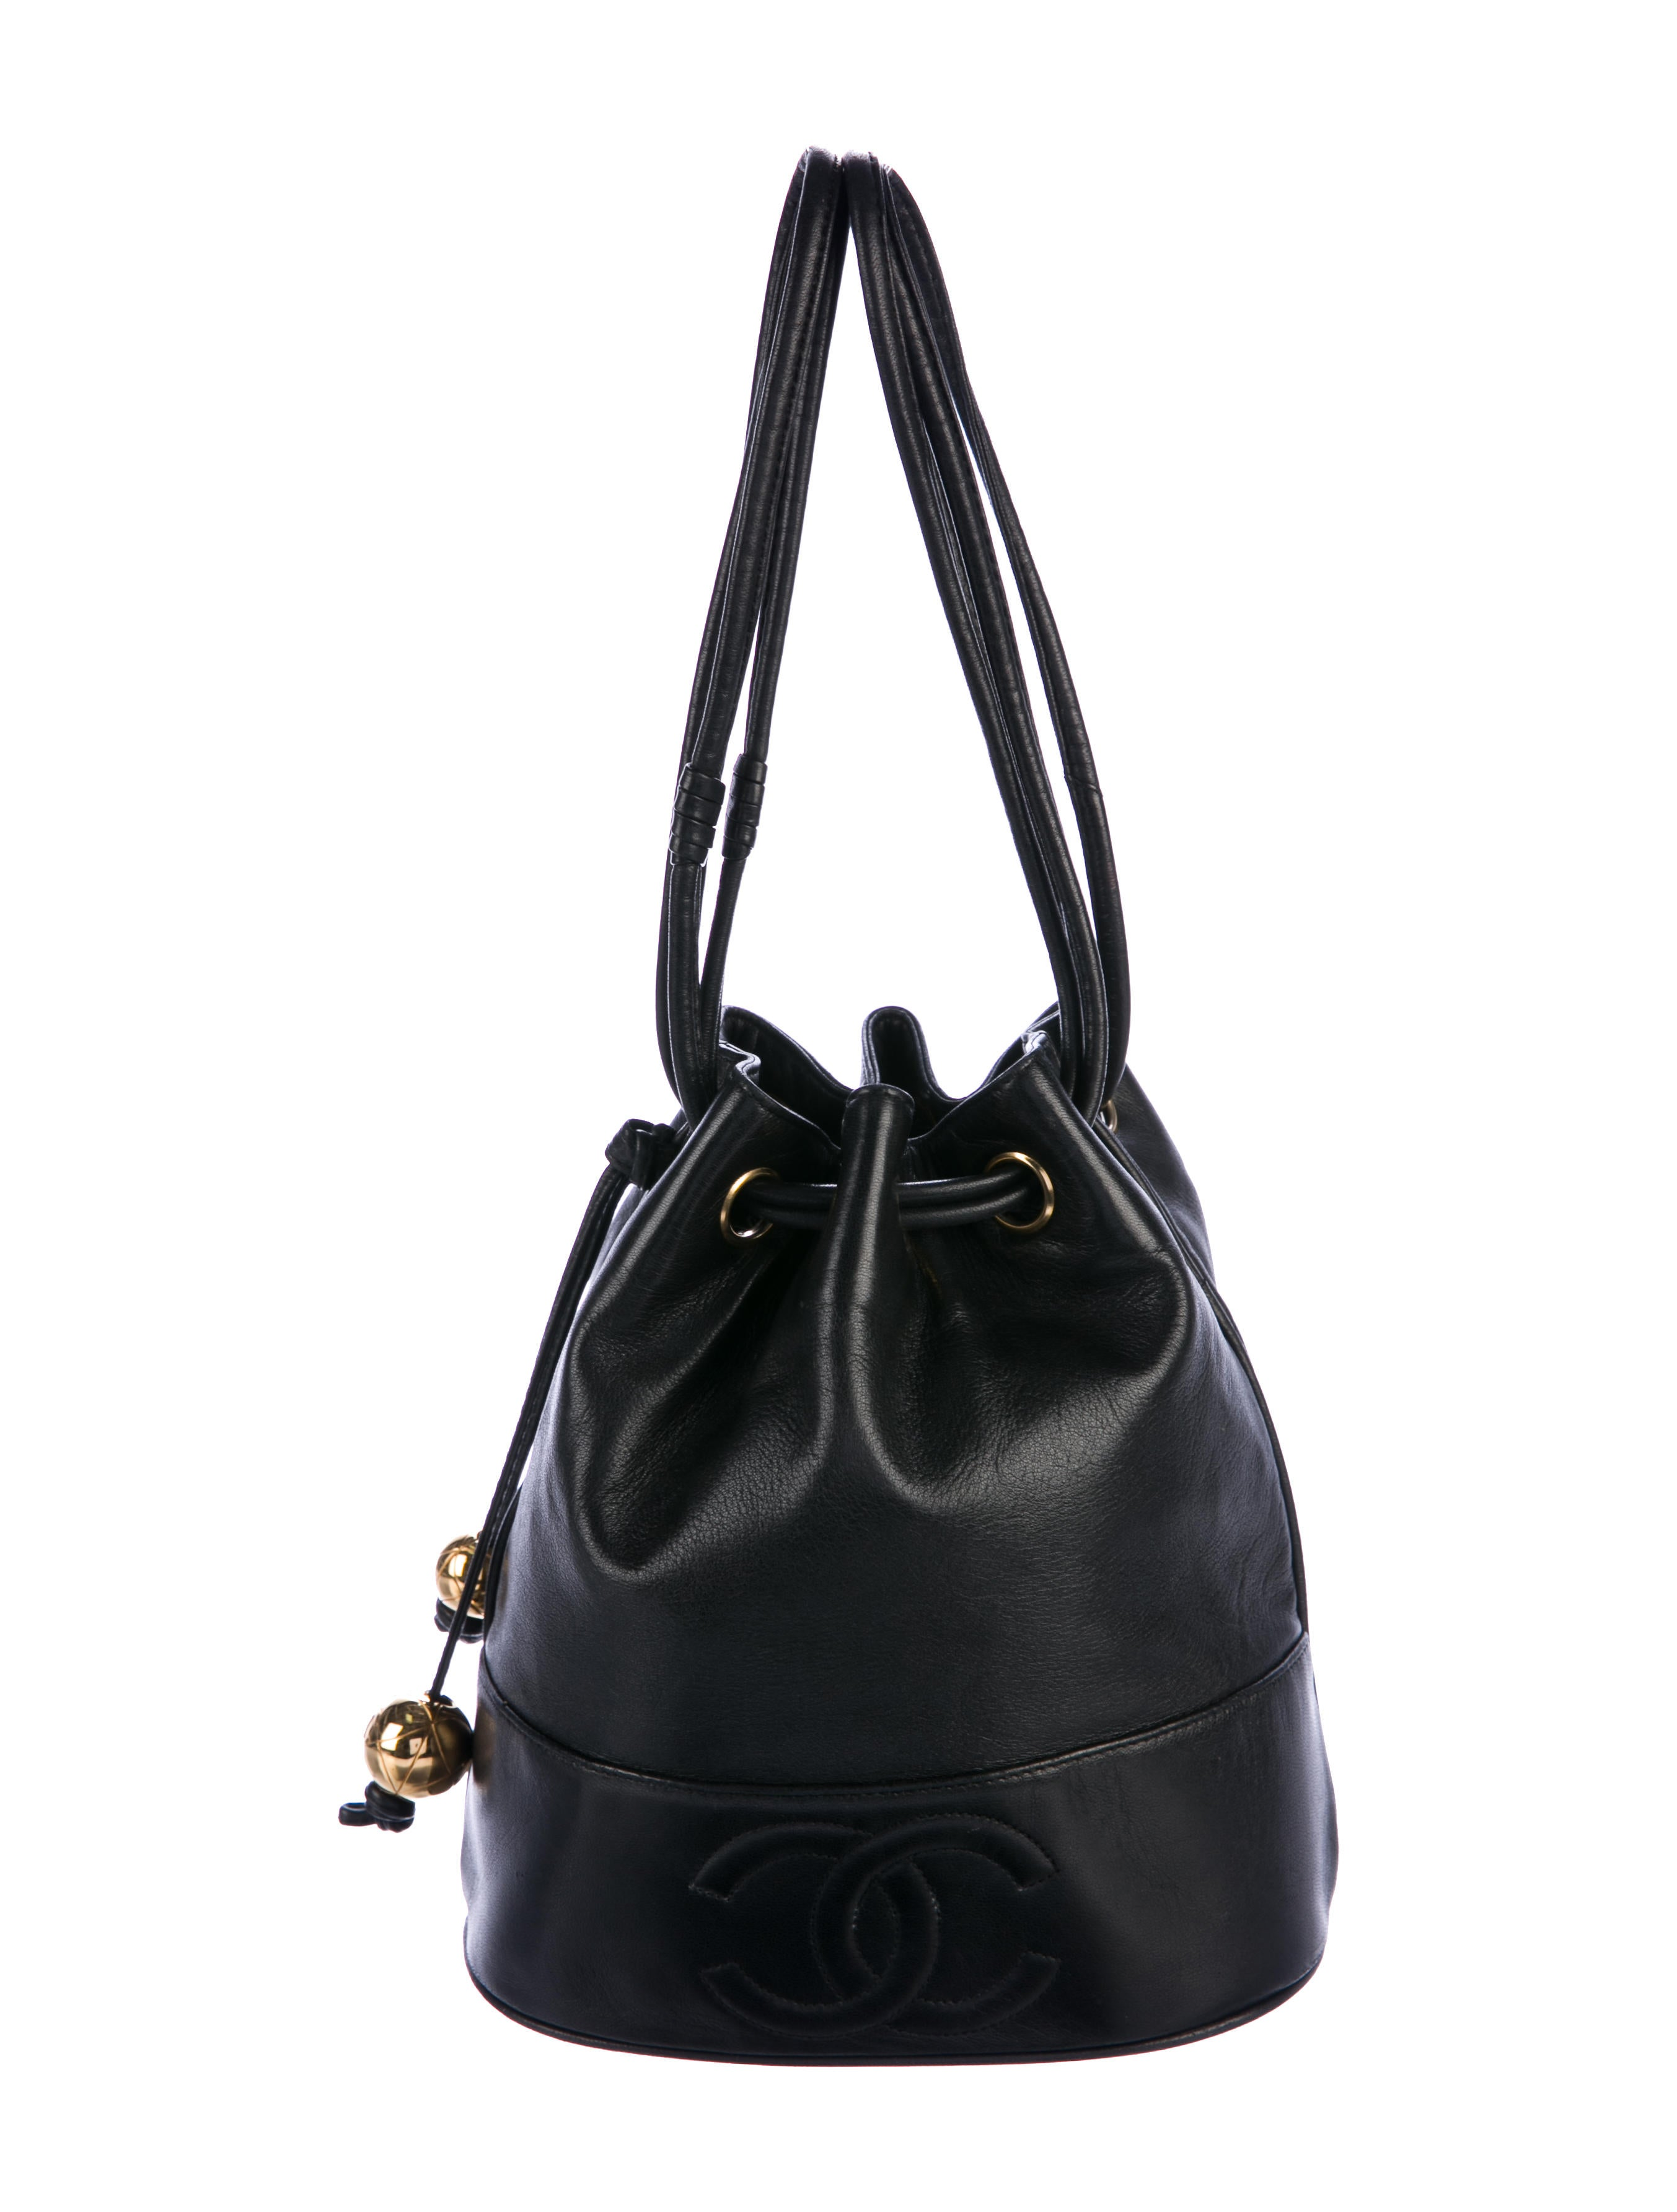 Shop bucket bag from Fendi, Givenchy, Gucci and from techclux.gq, Farfetch, Italist and many more. Find thousands of new high fashion items in one place.